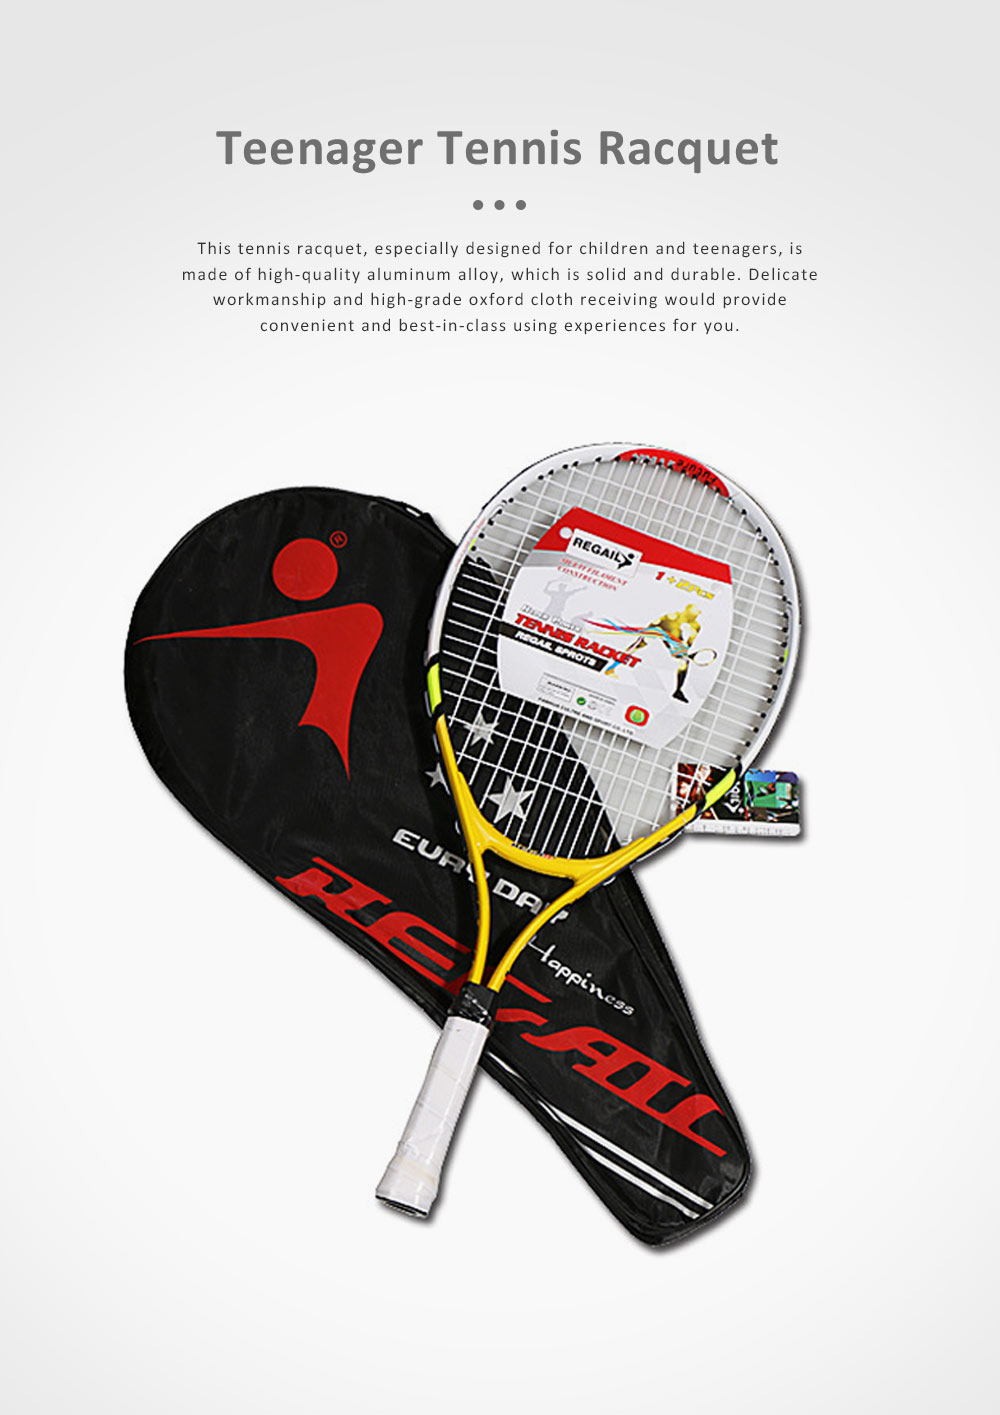 Solid Tennis Racquet with Aluminum Alloy, Delicate Professional Tennis Racket with Oxford Cloth Store Bag, Durable Tennis Racquet for Children Teenager 0